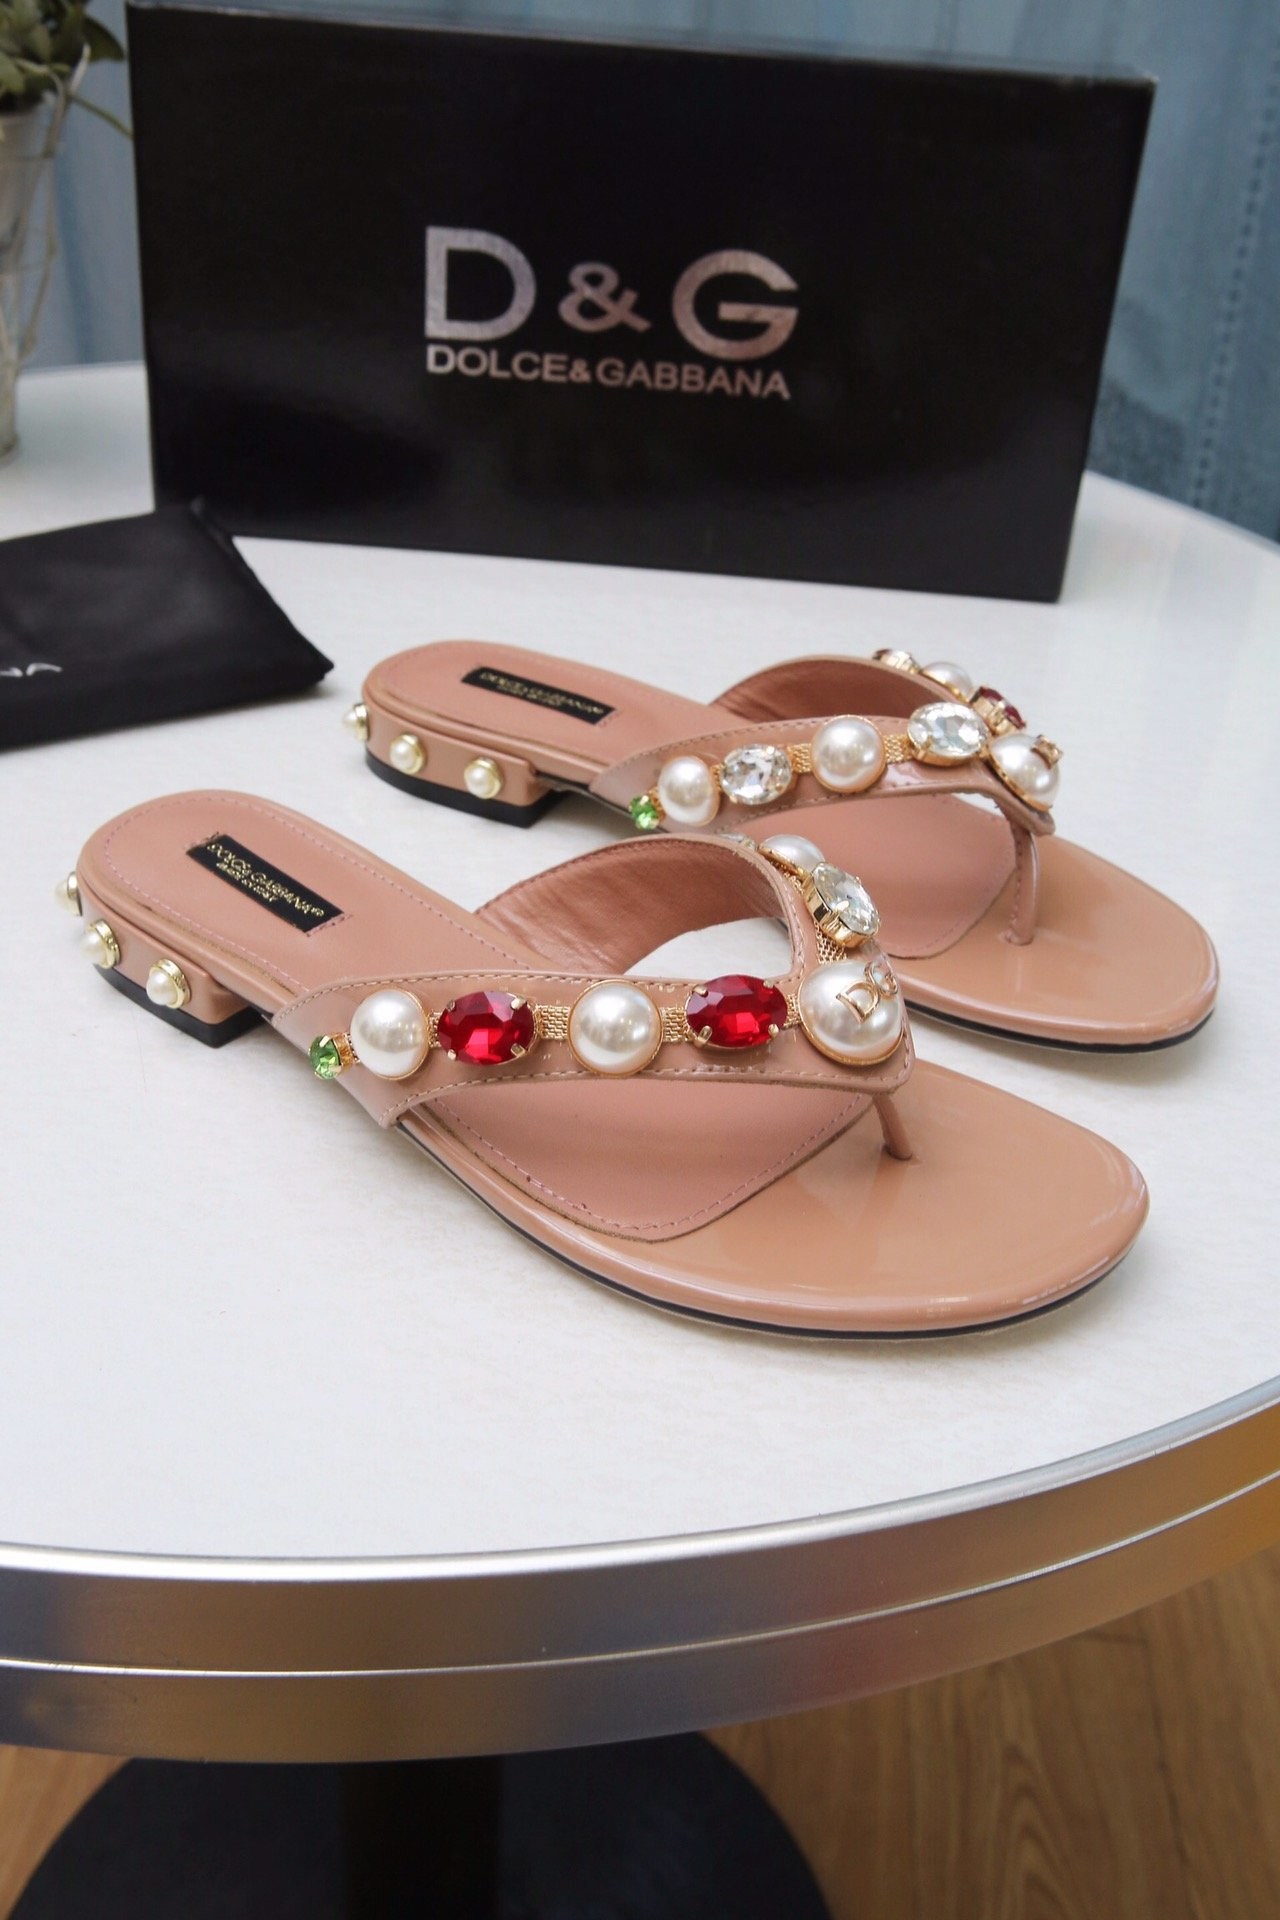 Image of D&G Women Casual Shoes Boots fashionable casual leather Women Heels Sandal Shoes